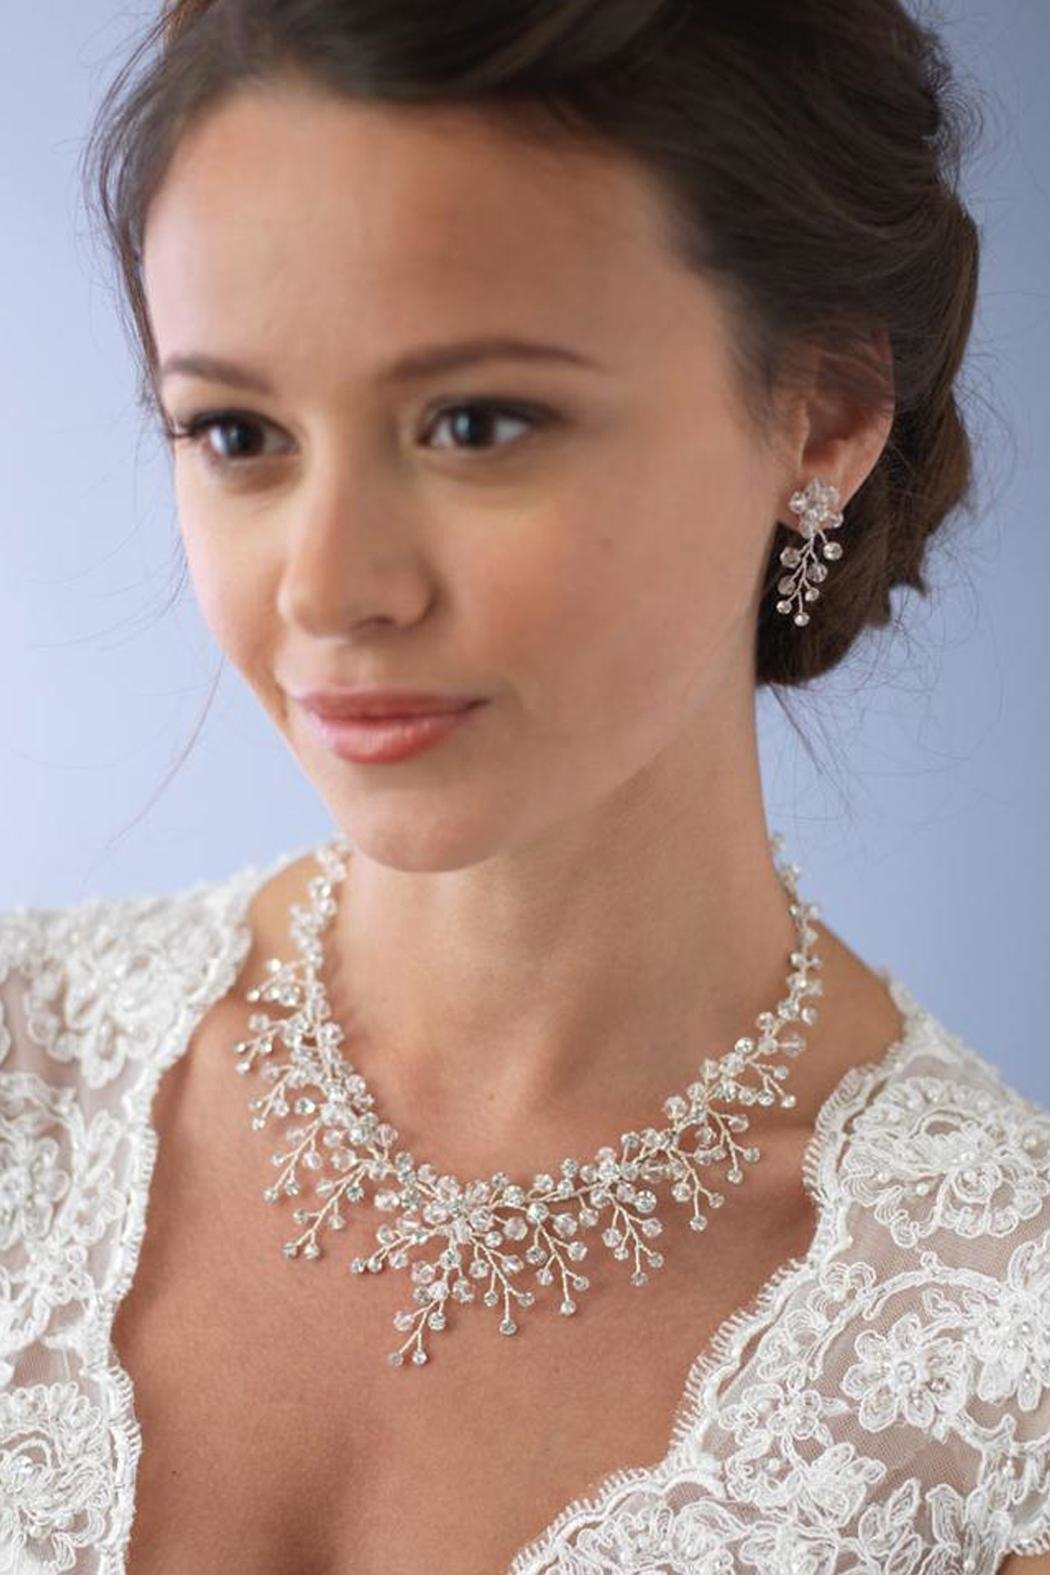 Wild Lilies Jewelry  Necklace & Earrings Set - Main Image